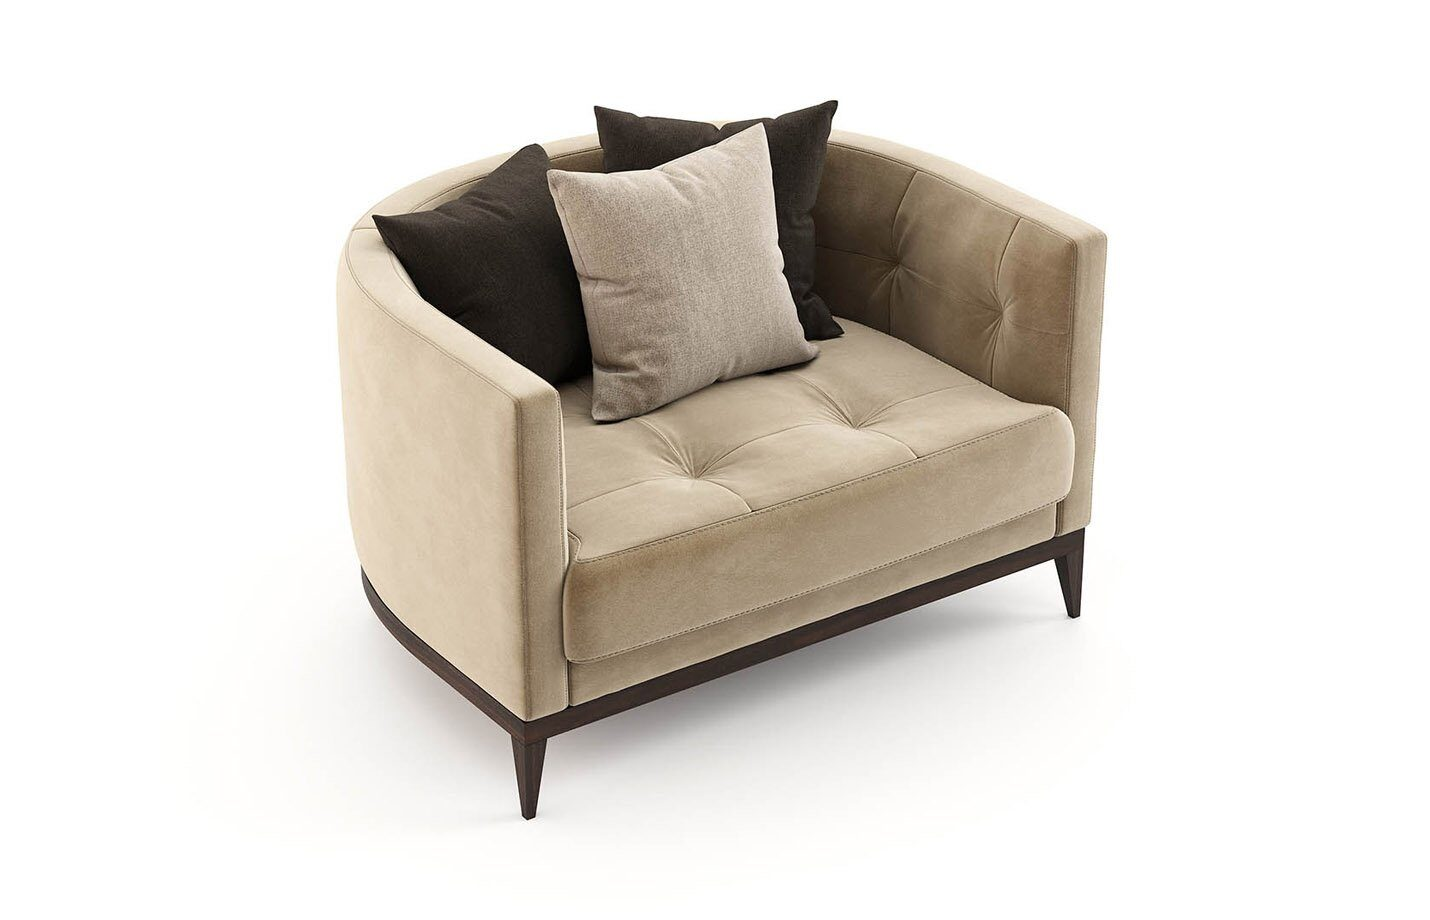 Medwin-Upholstery-single-Seater-Sofa-03